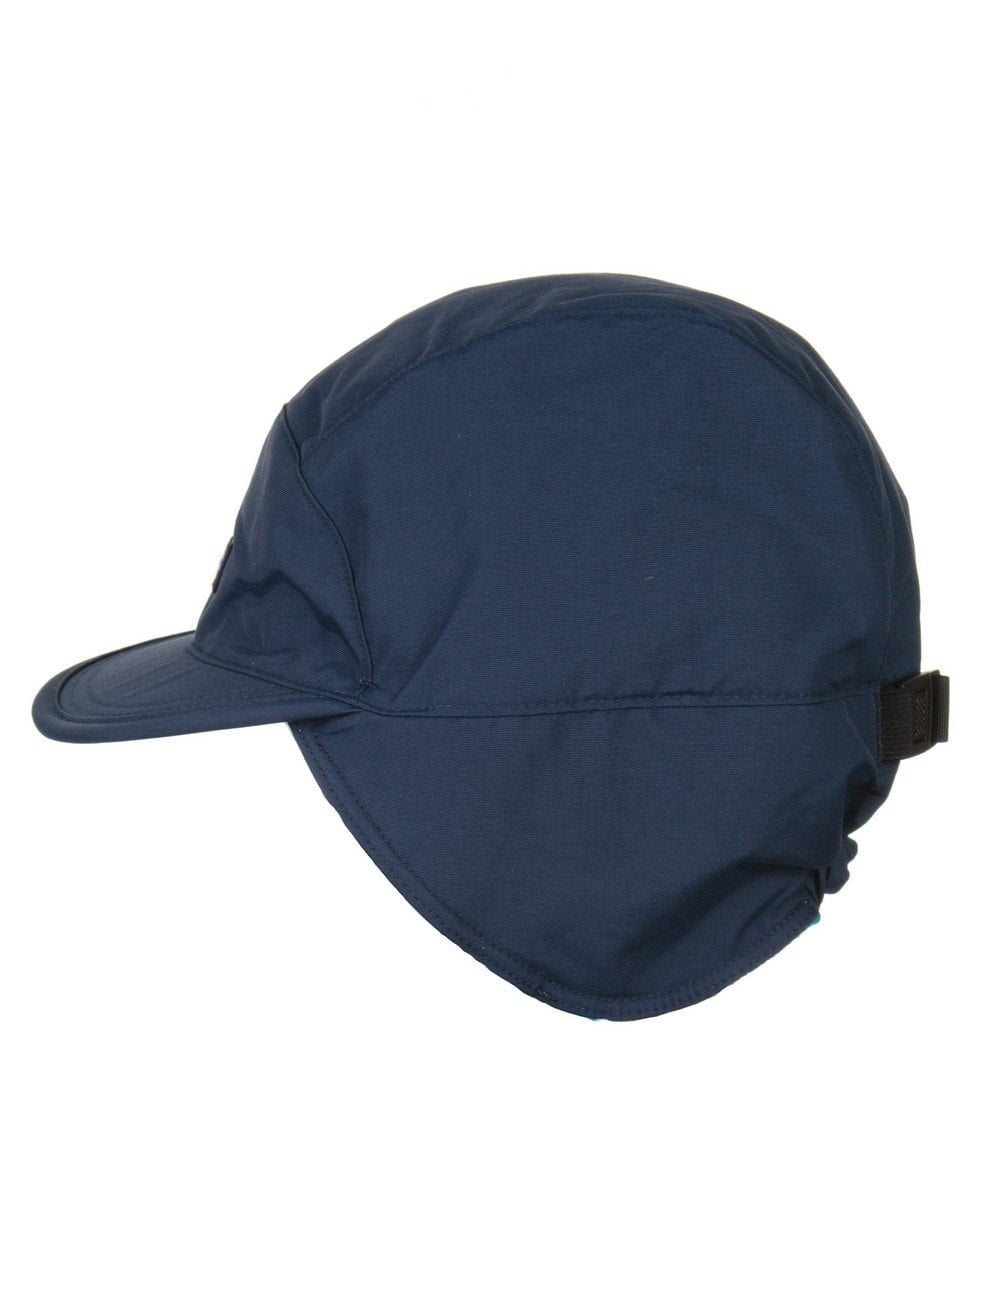 98784d4fd7a Patagonia Shelled Synchilla Duckbill Cap - Navy Blue - Accessories ...